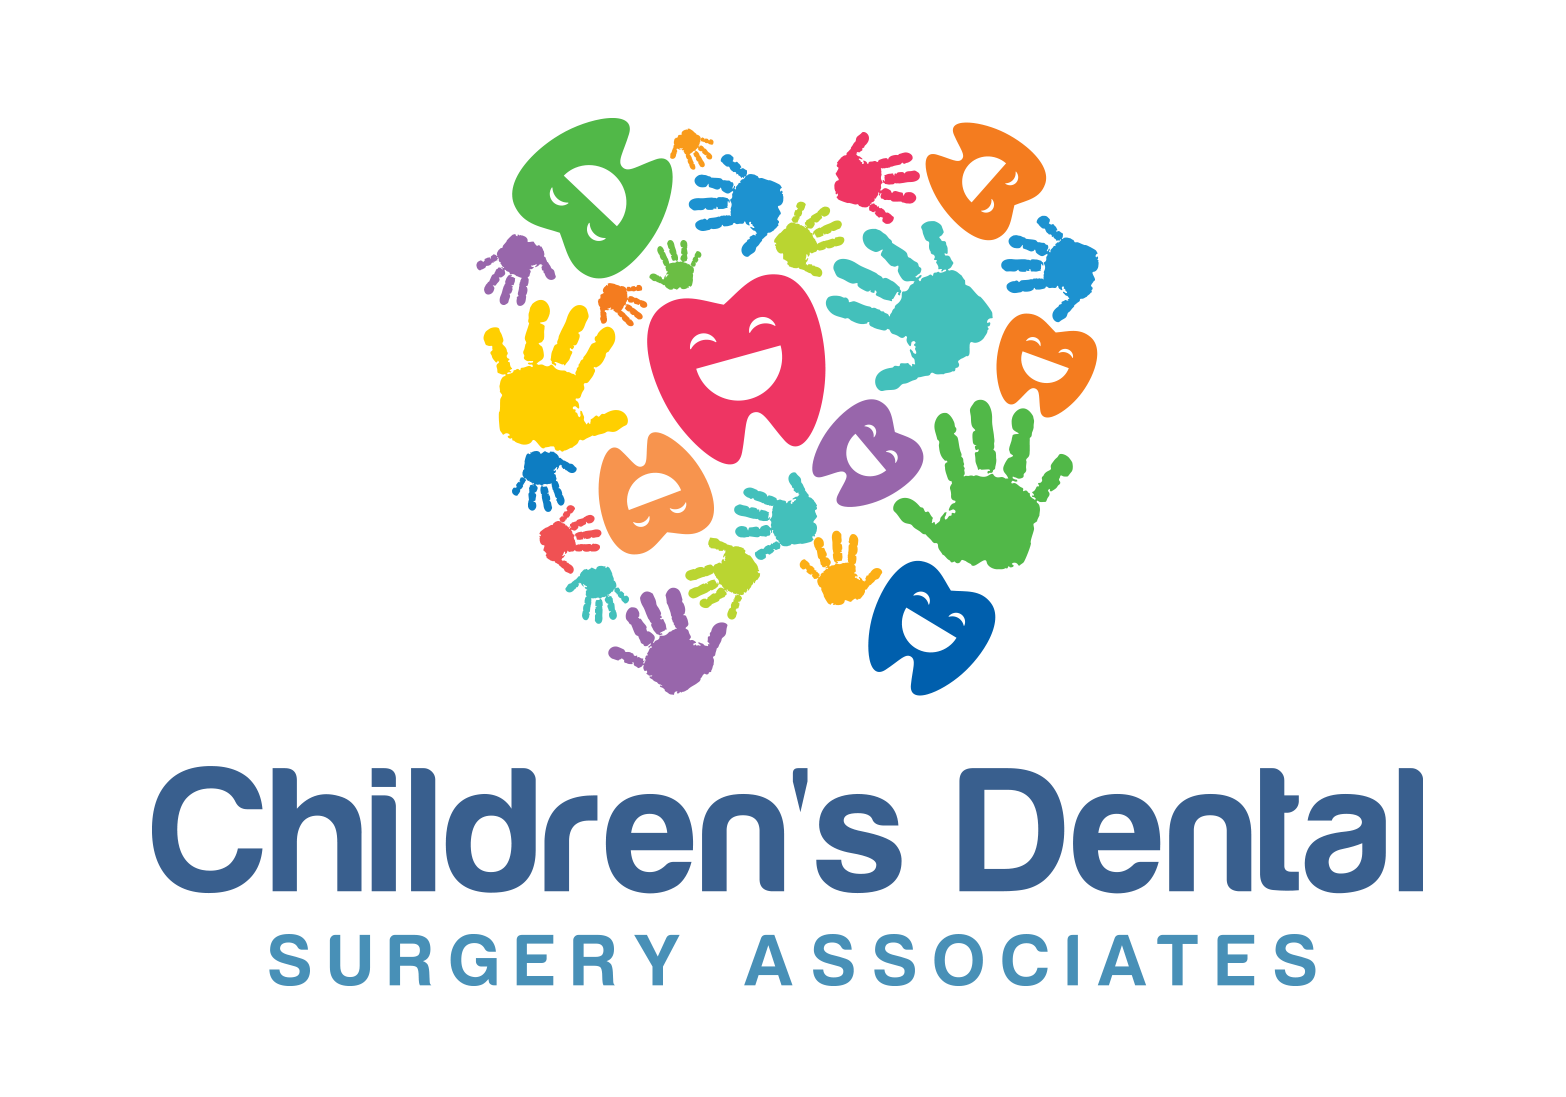 We need a fun logo for a brand new children's dental practice to attract young families